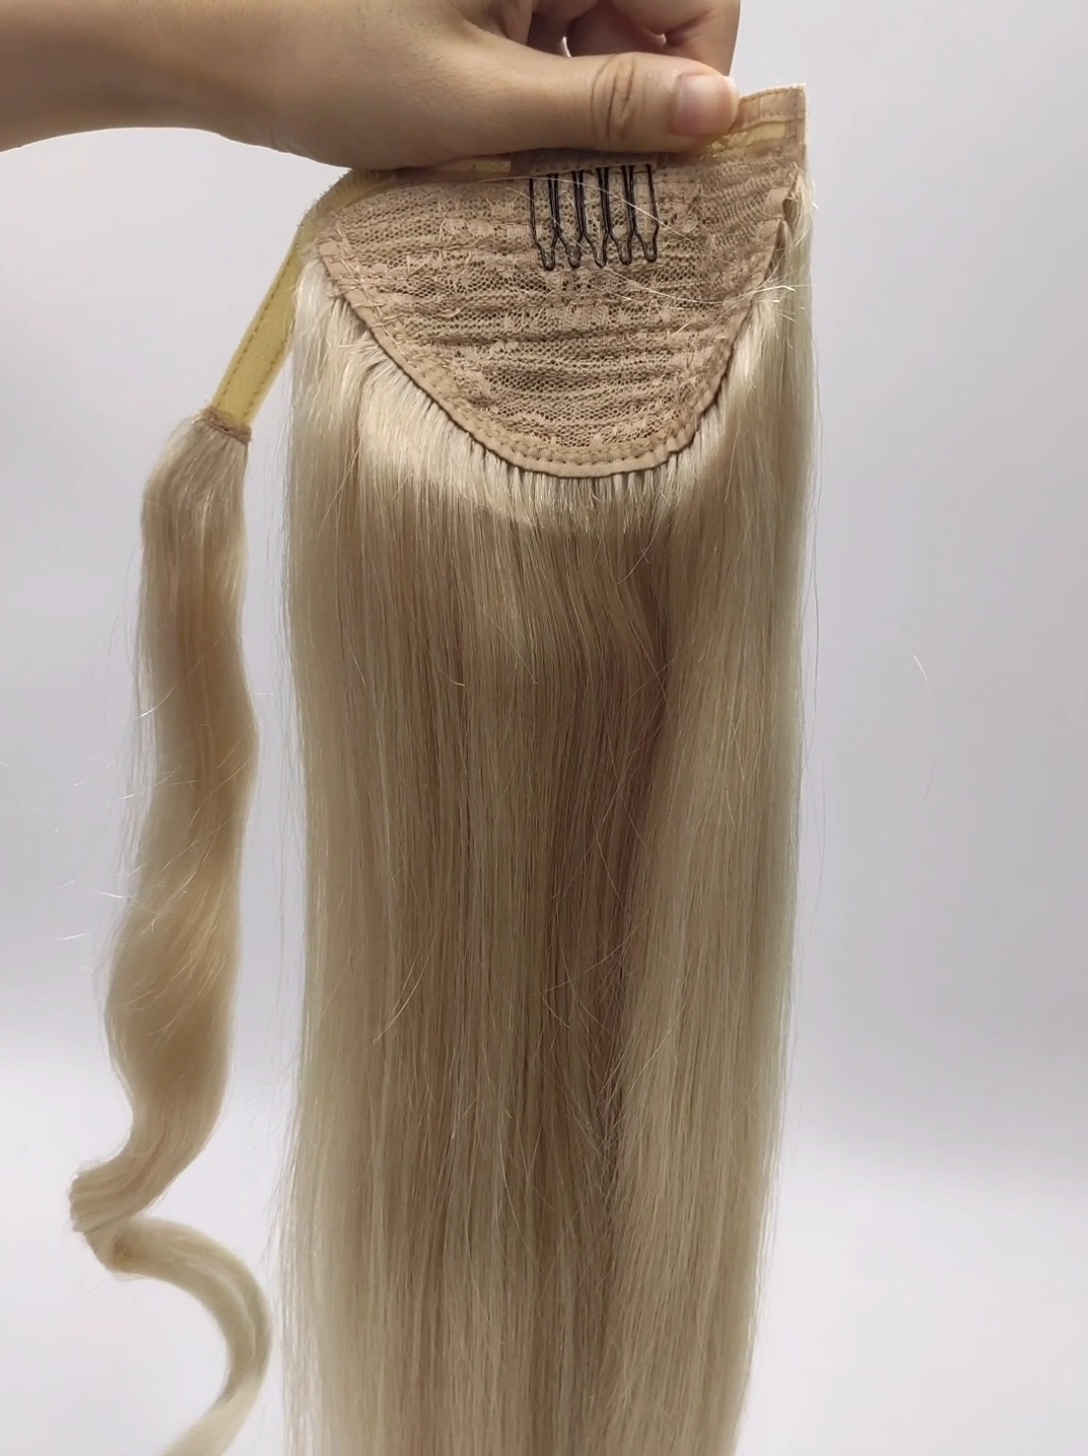 Qingdao Wave Beauty 2020 Brazilian 100% Virgin Remy Human Hair Extension Long Hair Piece Clip Claw Ponytail Straight Blonde